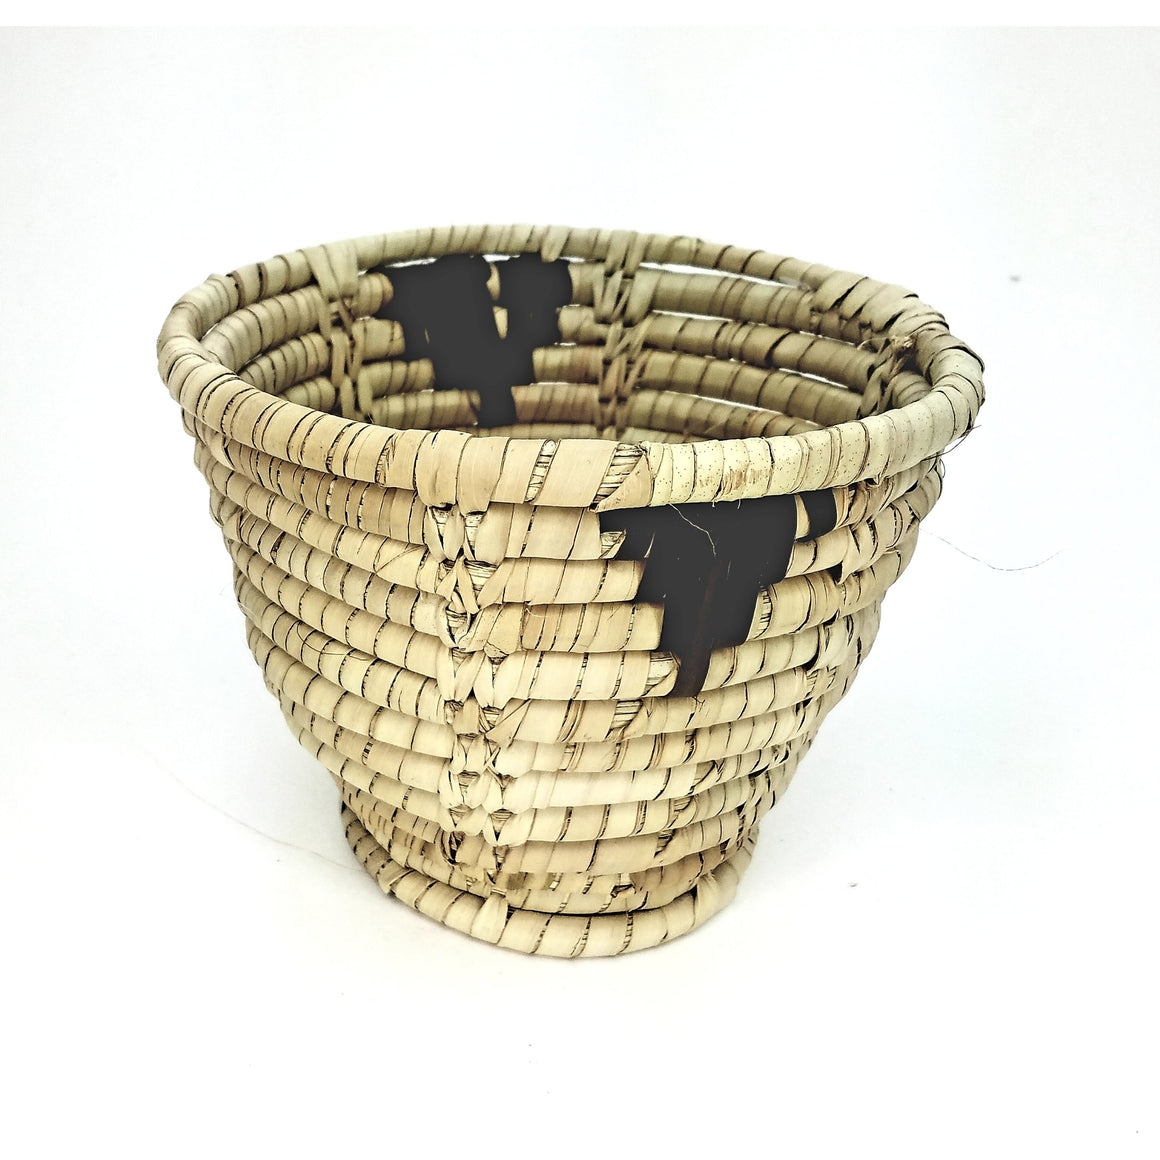 Wicker Basket Hand Woven In Zimbabwe